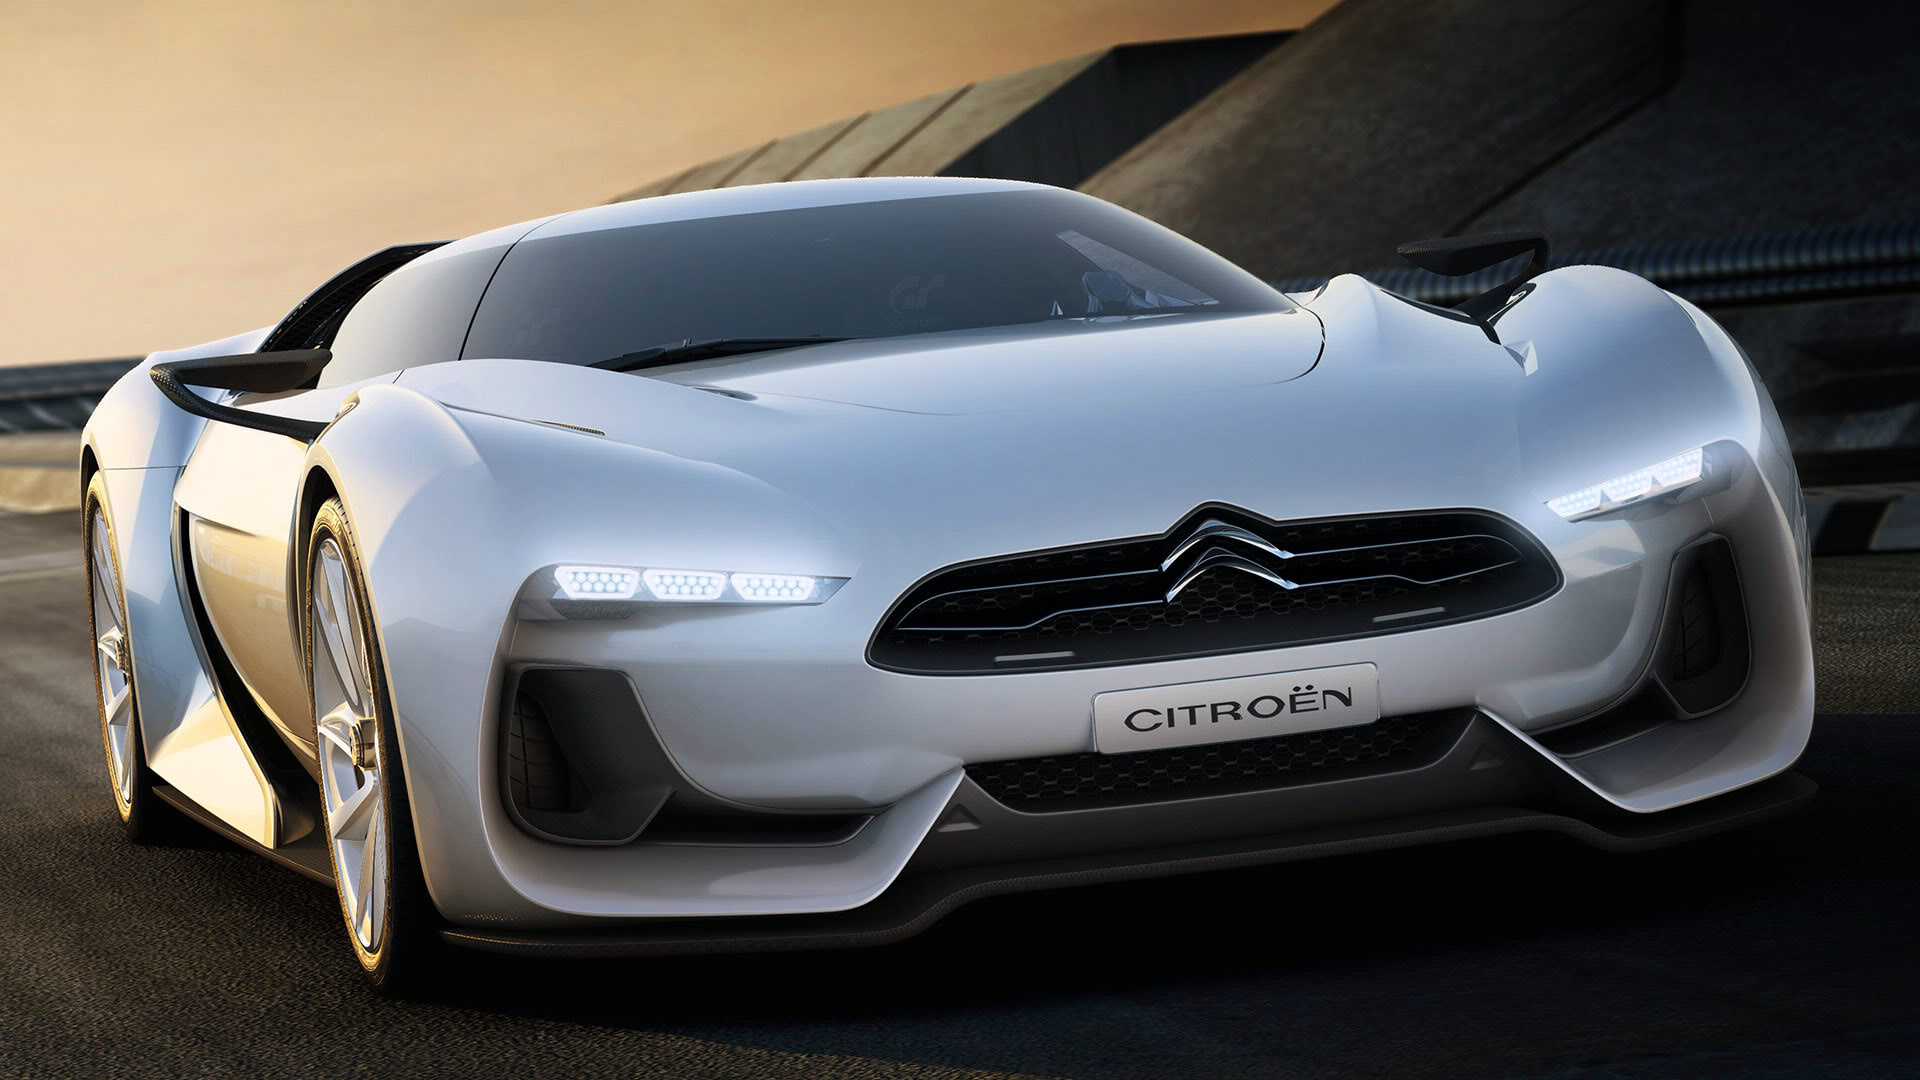 Citroen GT Wallpapers